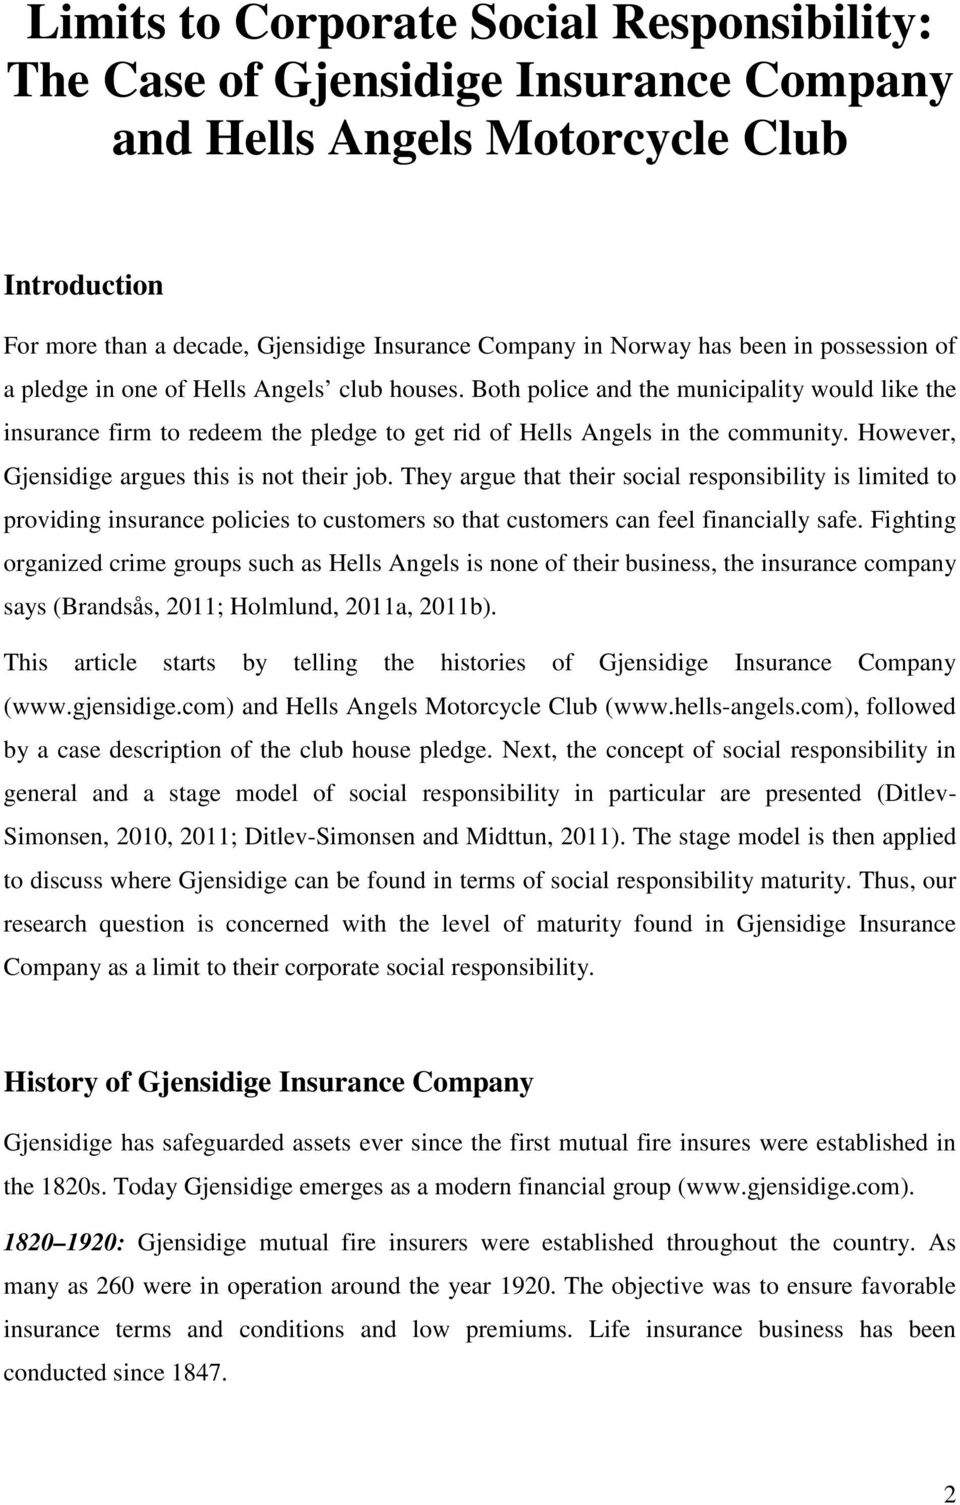 Limits to Corporate Social Responsibility: The Case of